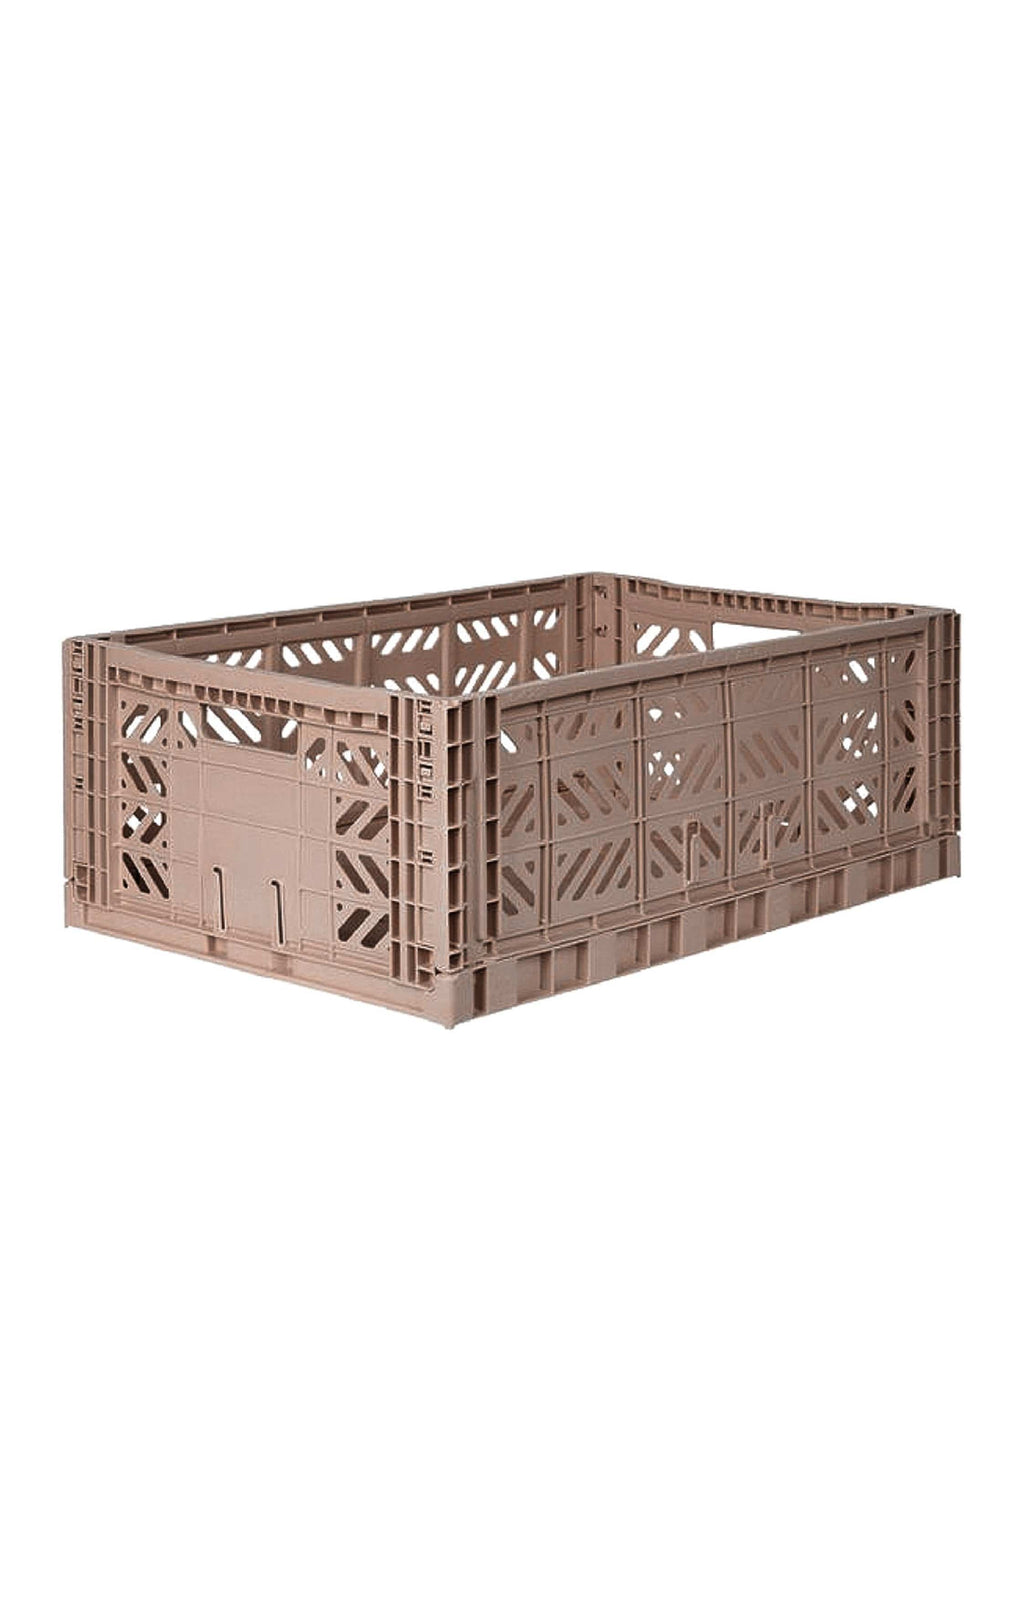 AY-KASA MAXI BOX Storage Crate, Warm Taupe (PRE-ORDER MARCH) - Hello Little Birdie